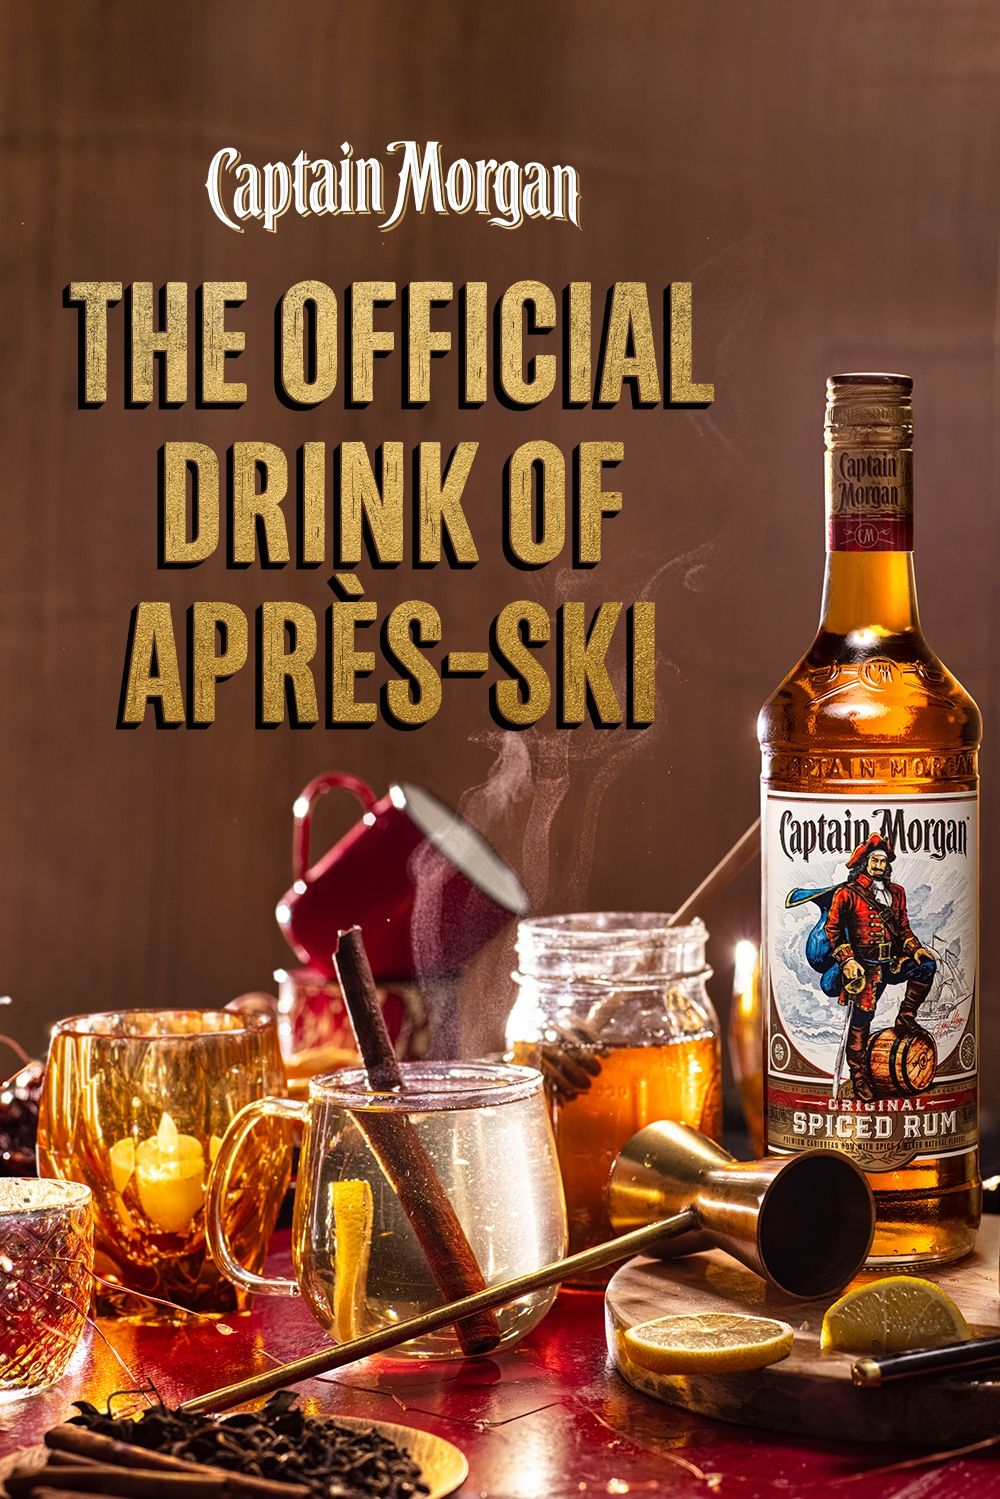 Apres Ski Means There S More Fun To Be Had Pour A Captain Morgan Hot Toddy And Tell Everyone How Great You Were Out There Or In 2021 Spiced Rum Drinks Captain Morgan